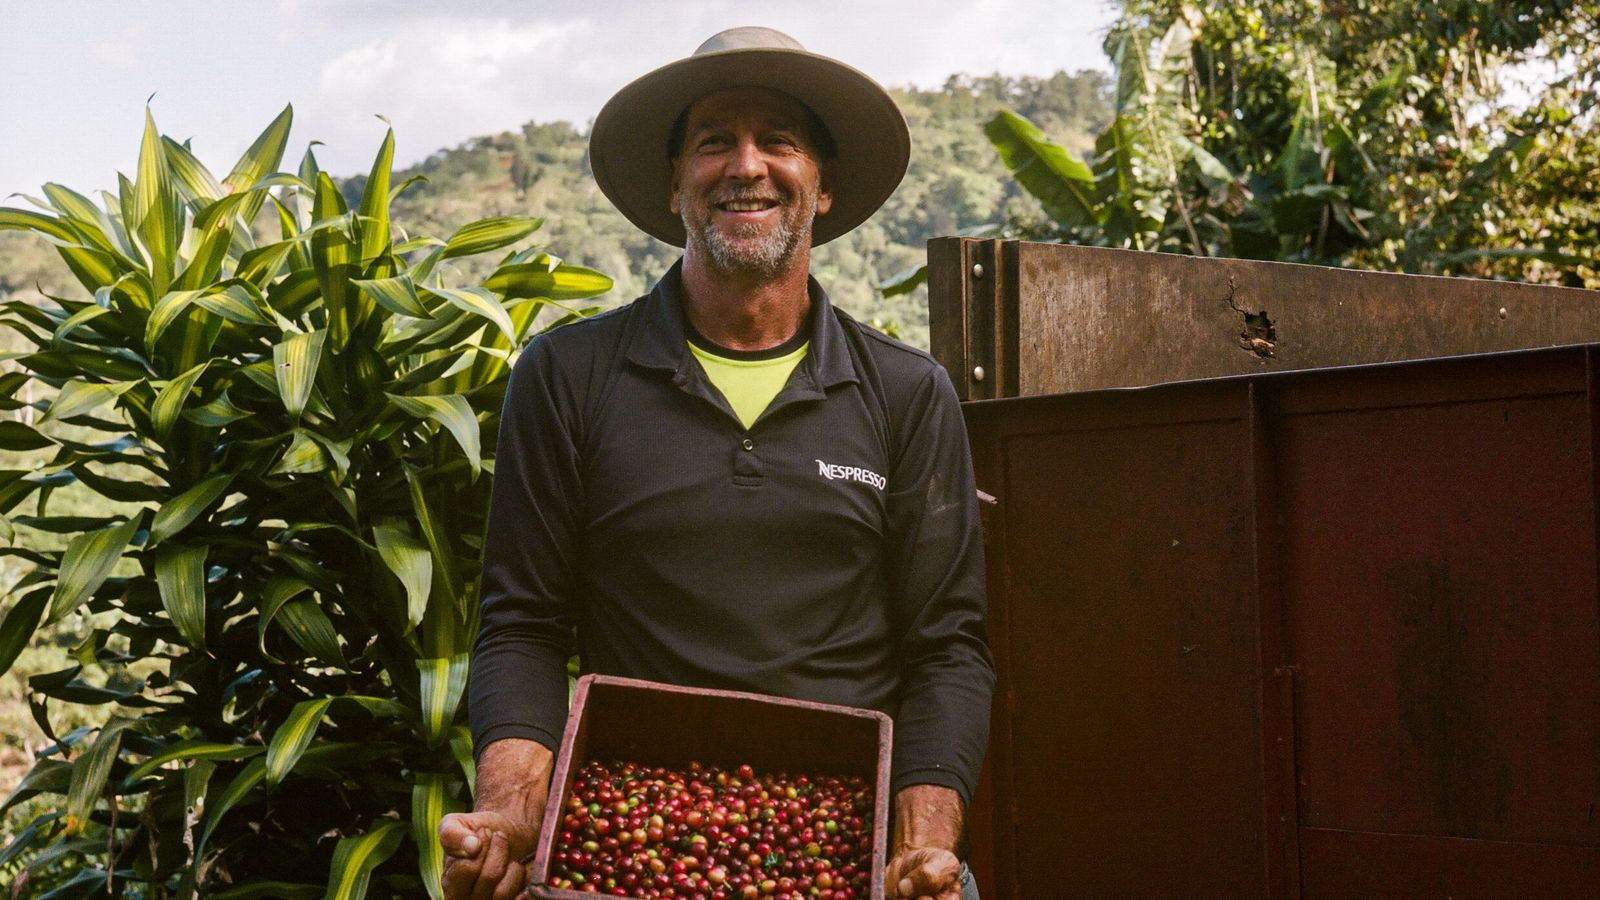 Luis Emilio with a plump, fresh batch of coffee cherries. Luis is immensely proud of the ...